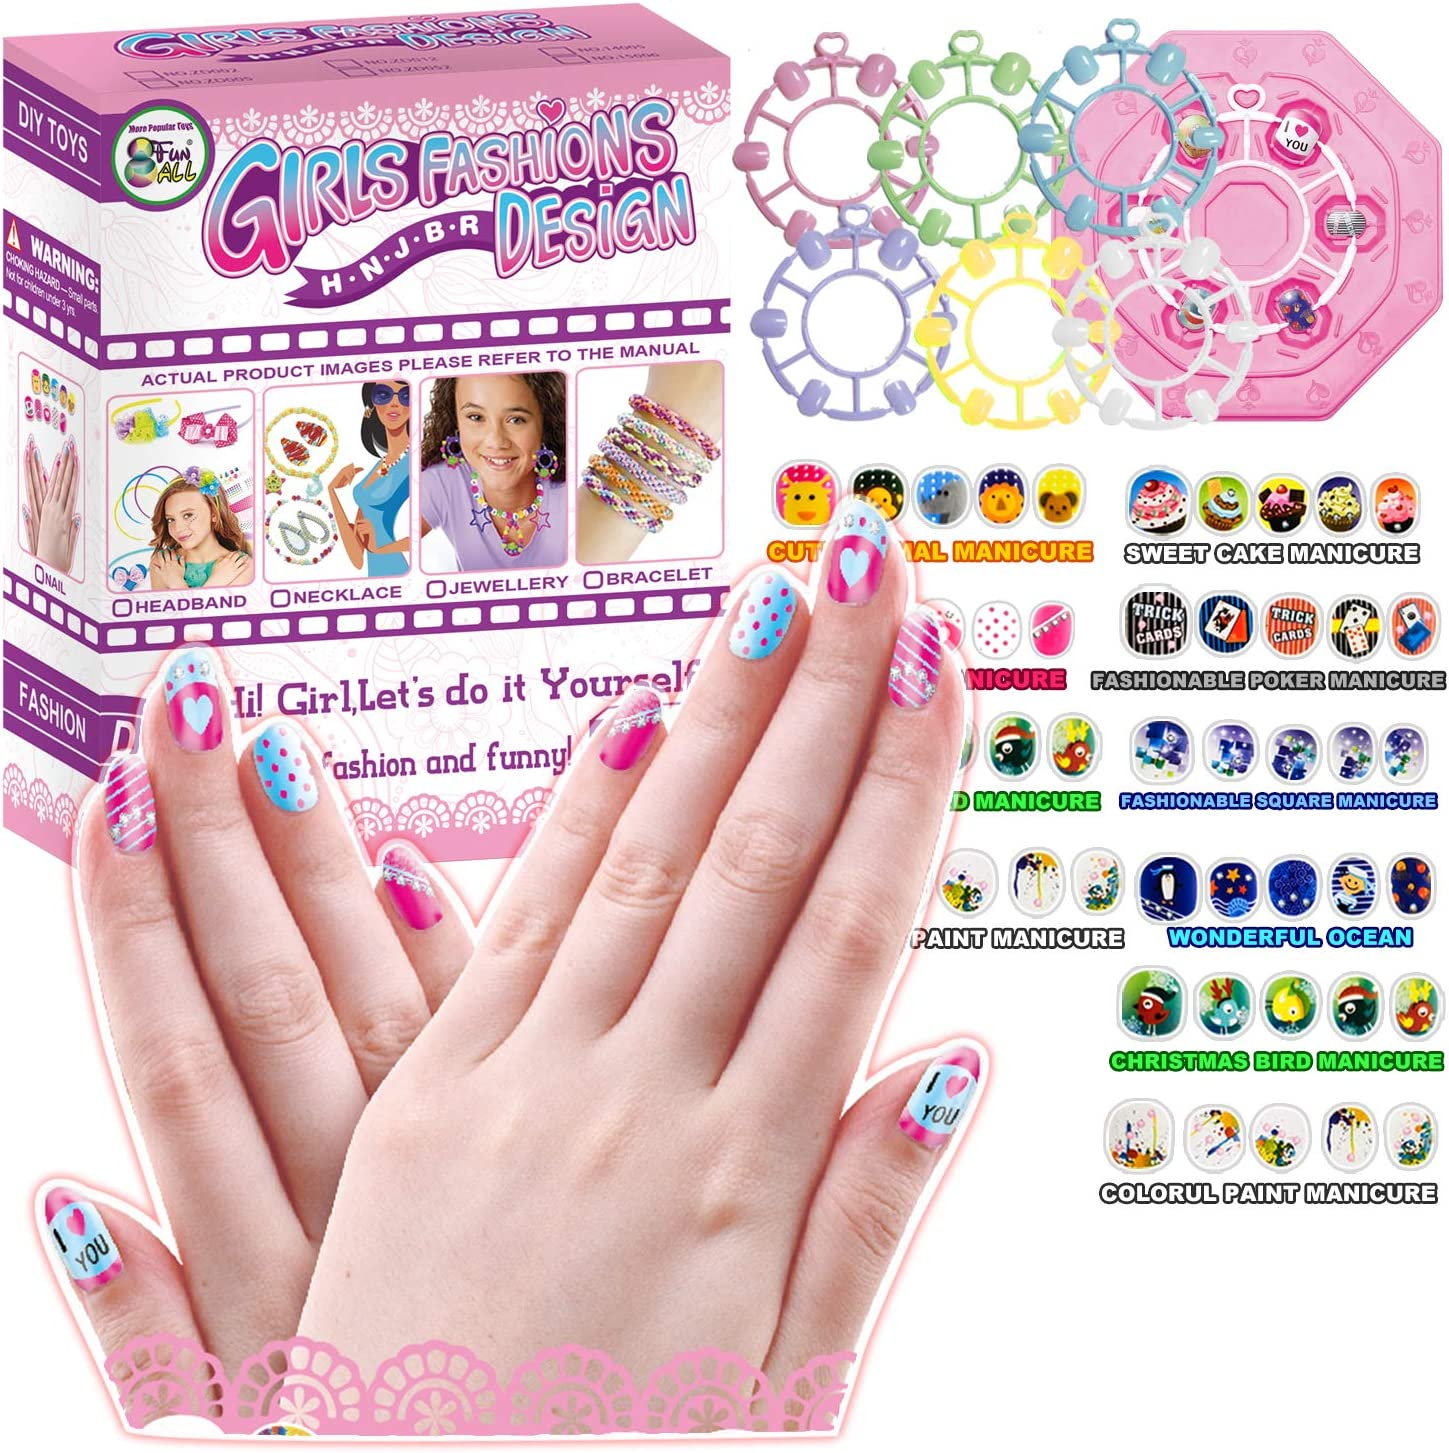 Girls Fashion DIY Design Nail Art Manicure Gift Colorful Fake Nails &  Themes Stickers Set Kit for Kids Makeup & Art Party Supplier